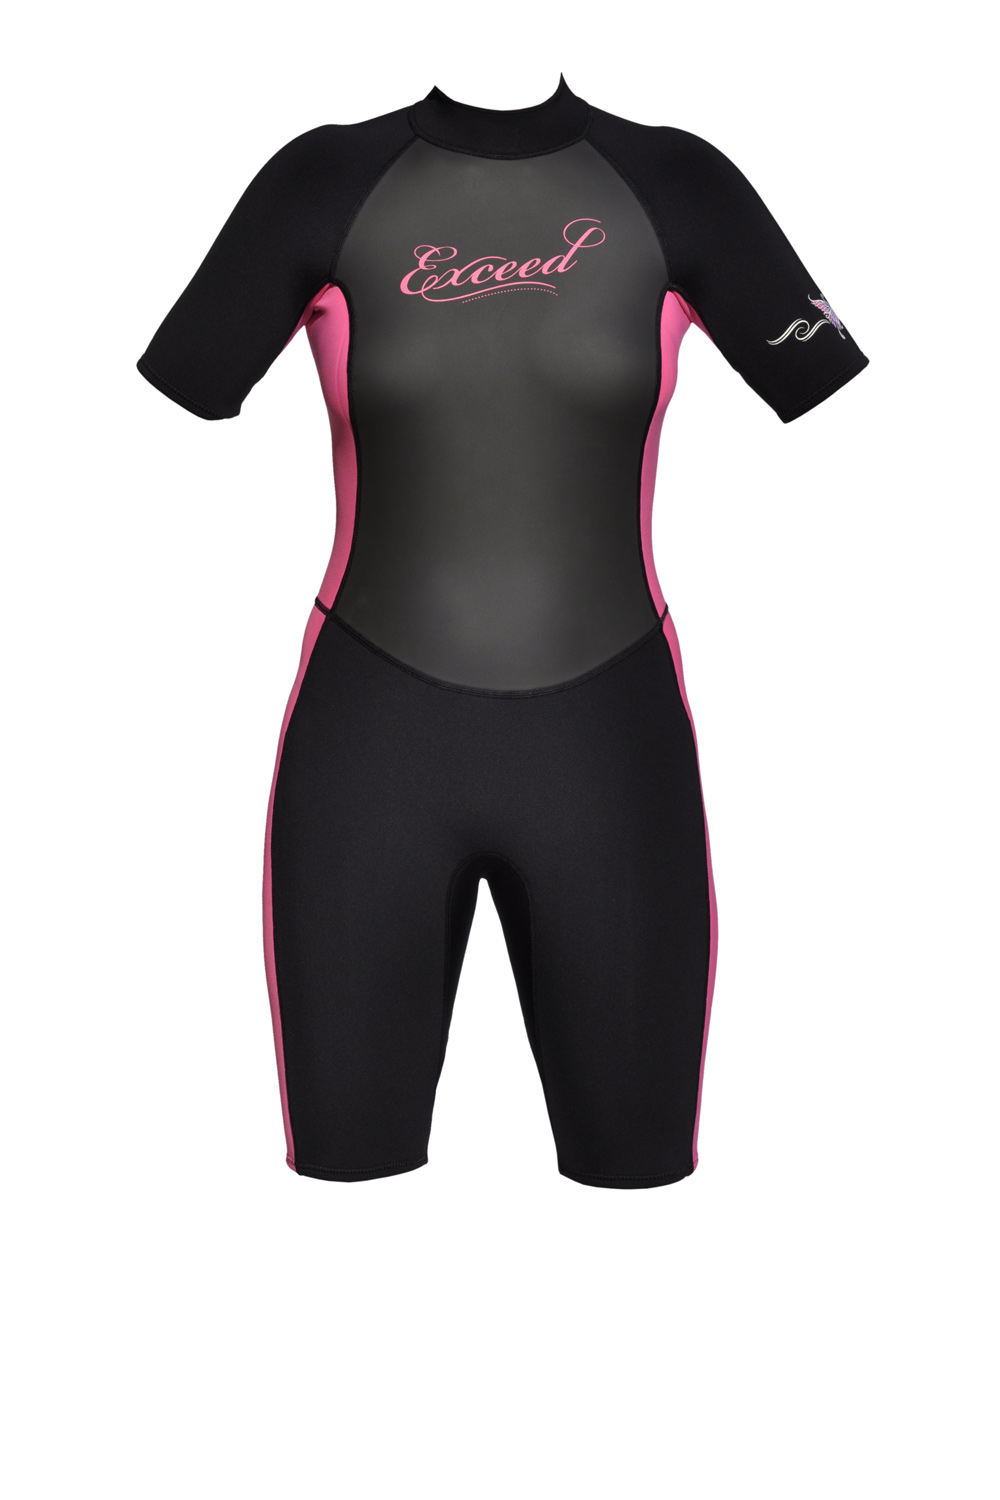 Exceed Evolution Remix Womens 3/2mm Shorty Wetsuit